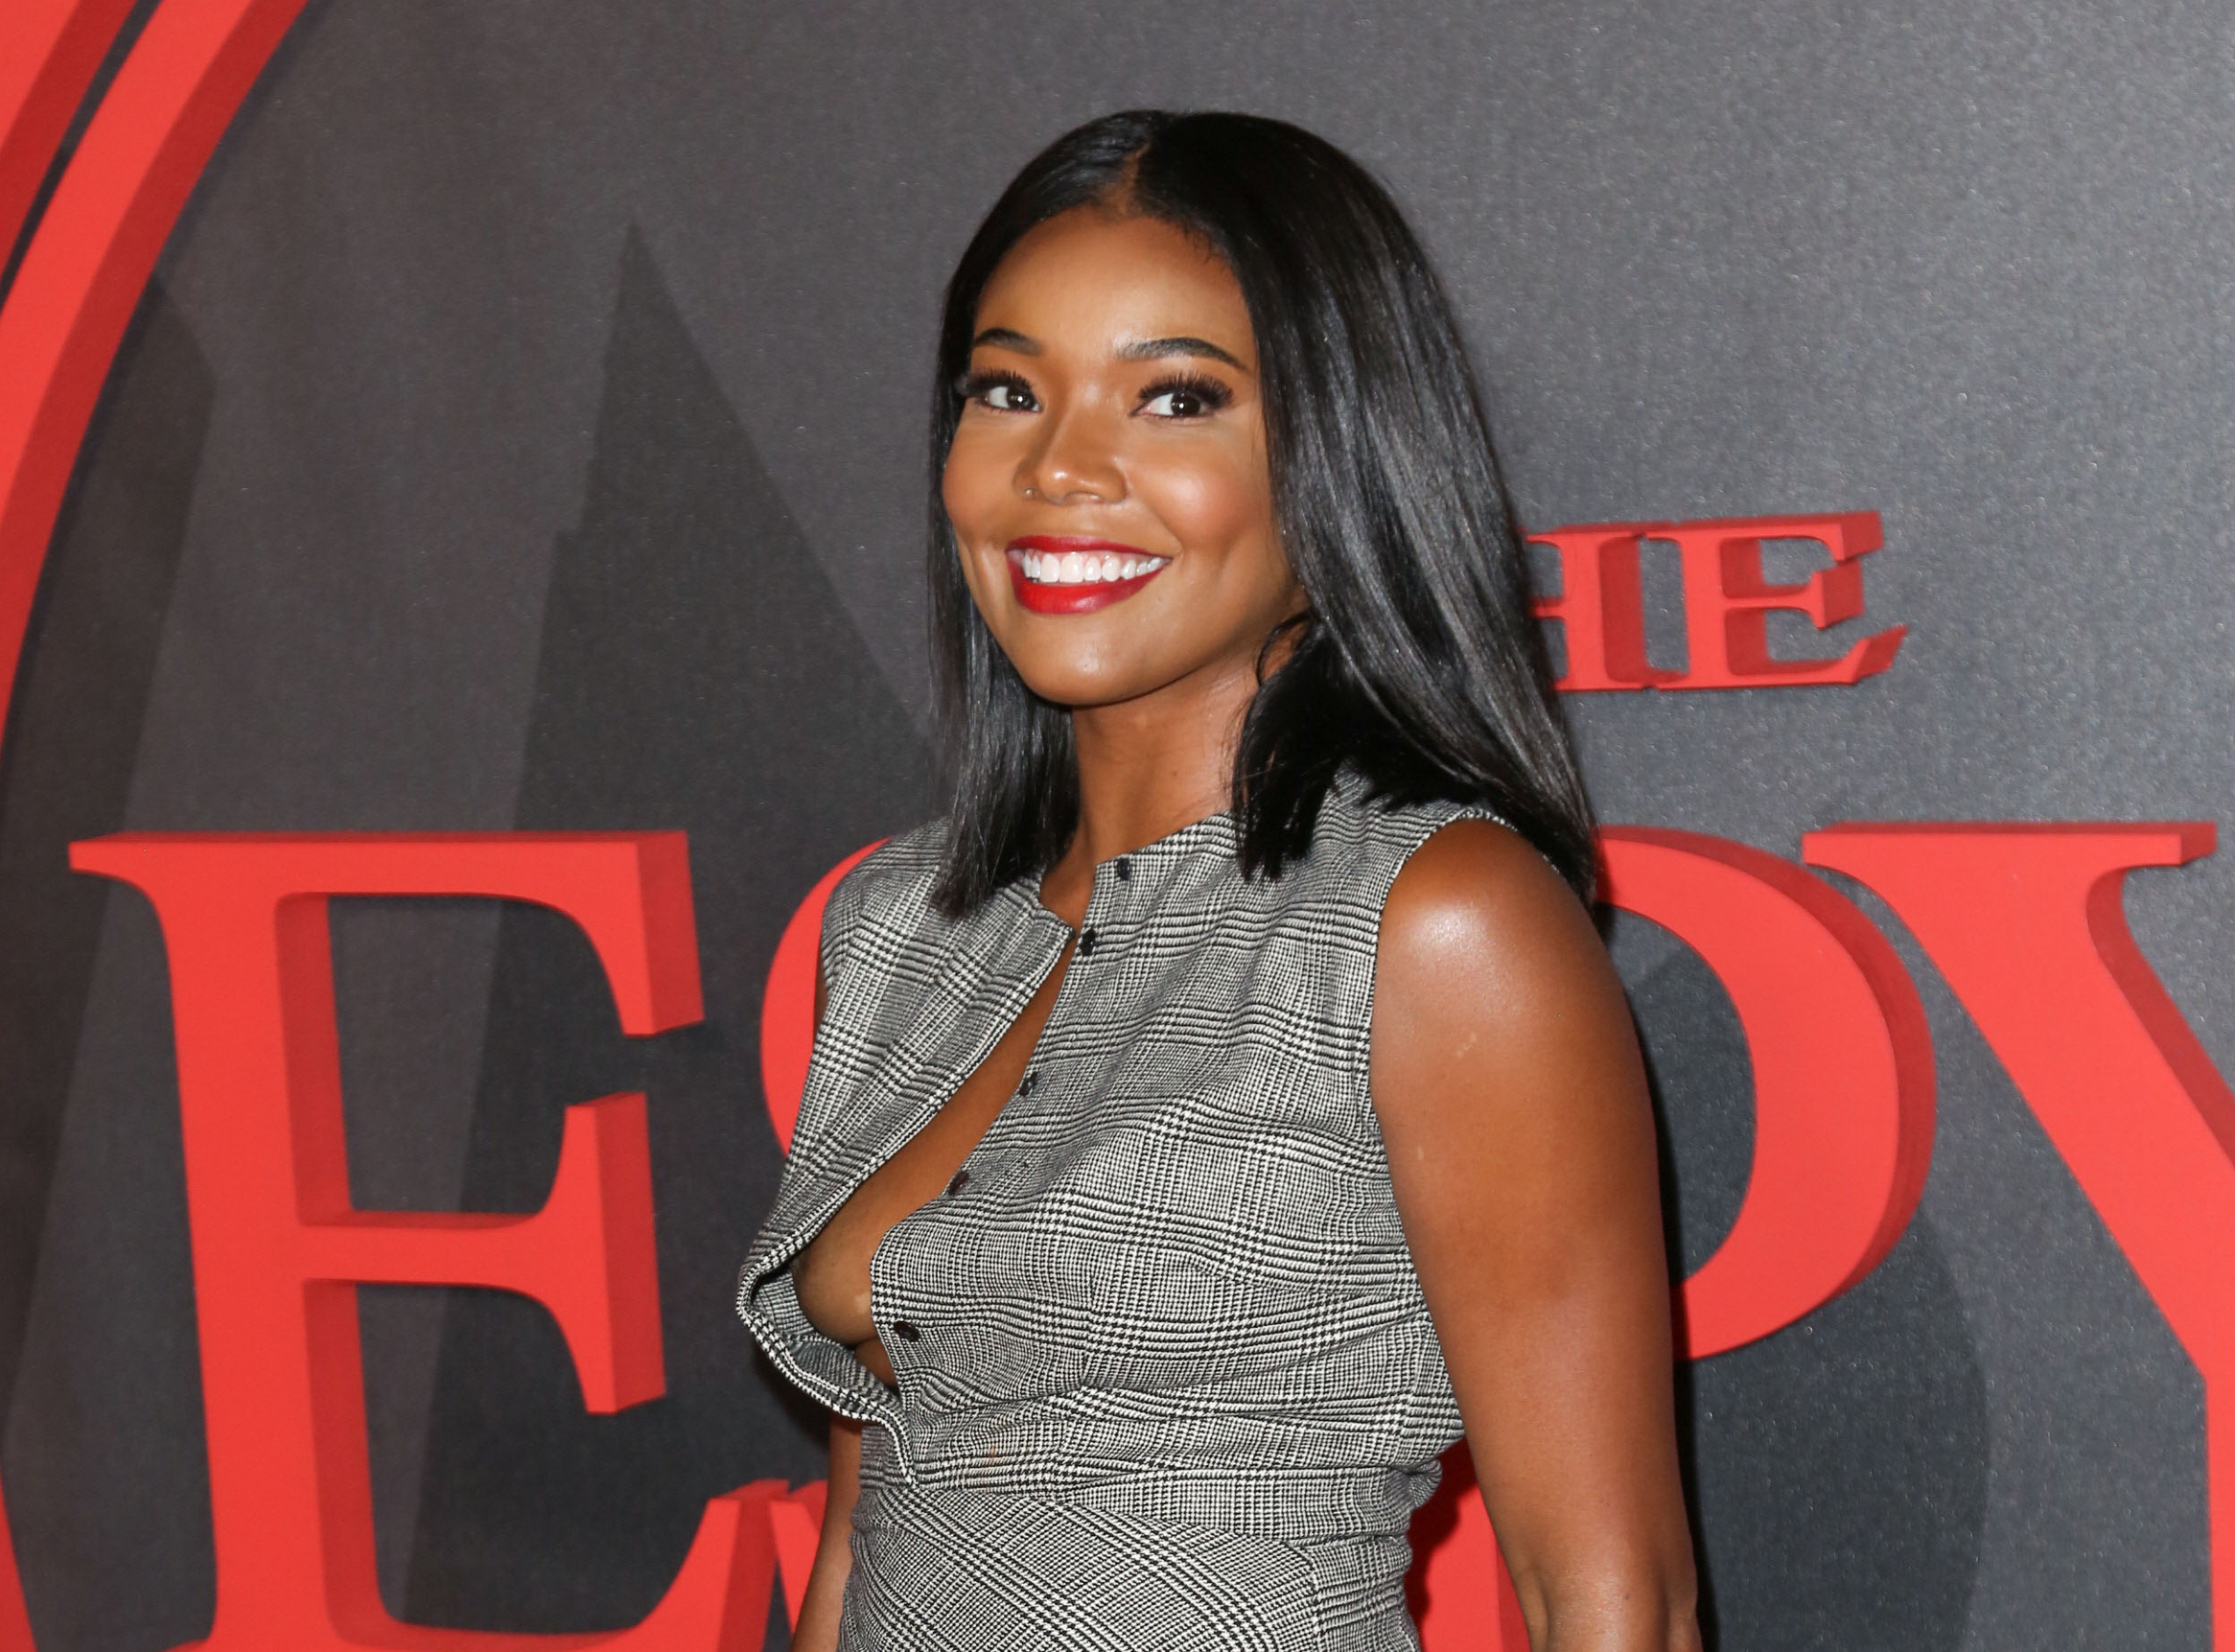 07/13/2016 - Gabrielle Union - BODY at the ESPYS 2016 Pre-ESPY Awards Party - Arrivals - Avalon Hollywood Nightclub, 1735 Vine Street - Los Angeles, CA, USA - Keywords: Vertical, 2016 ESPYS, ESPN, Sports, Award Show, Portrait, Photography, Adult, Arts Culture and Entertainment, Person, People, Celebrity, Celebrities, Annual Event, Attending, Appearance, Red Carpet Event, Topix, Bestof, Los Angeles, California Orientation: Portrait Face Count: 1 - False - Photo Credit: Guillermo Proano / PR Photos - Contact (1-866-551-7827) - Portrait Face Count: 1